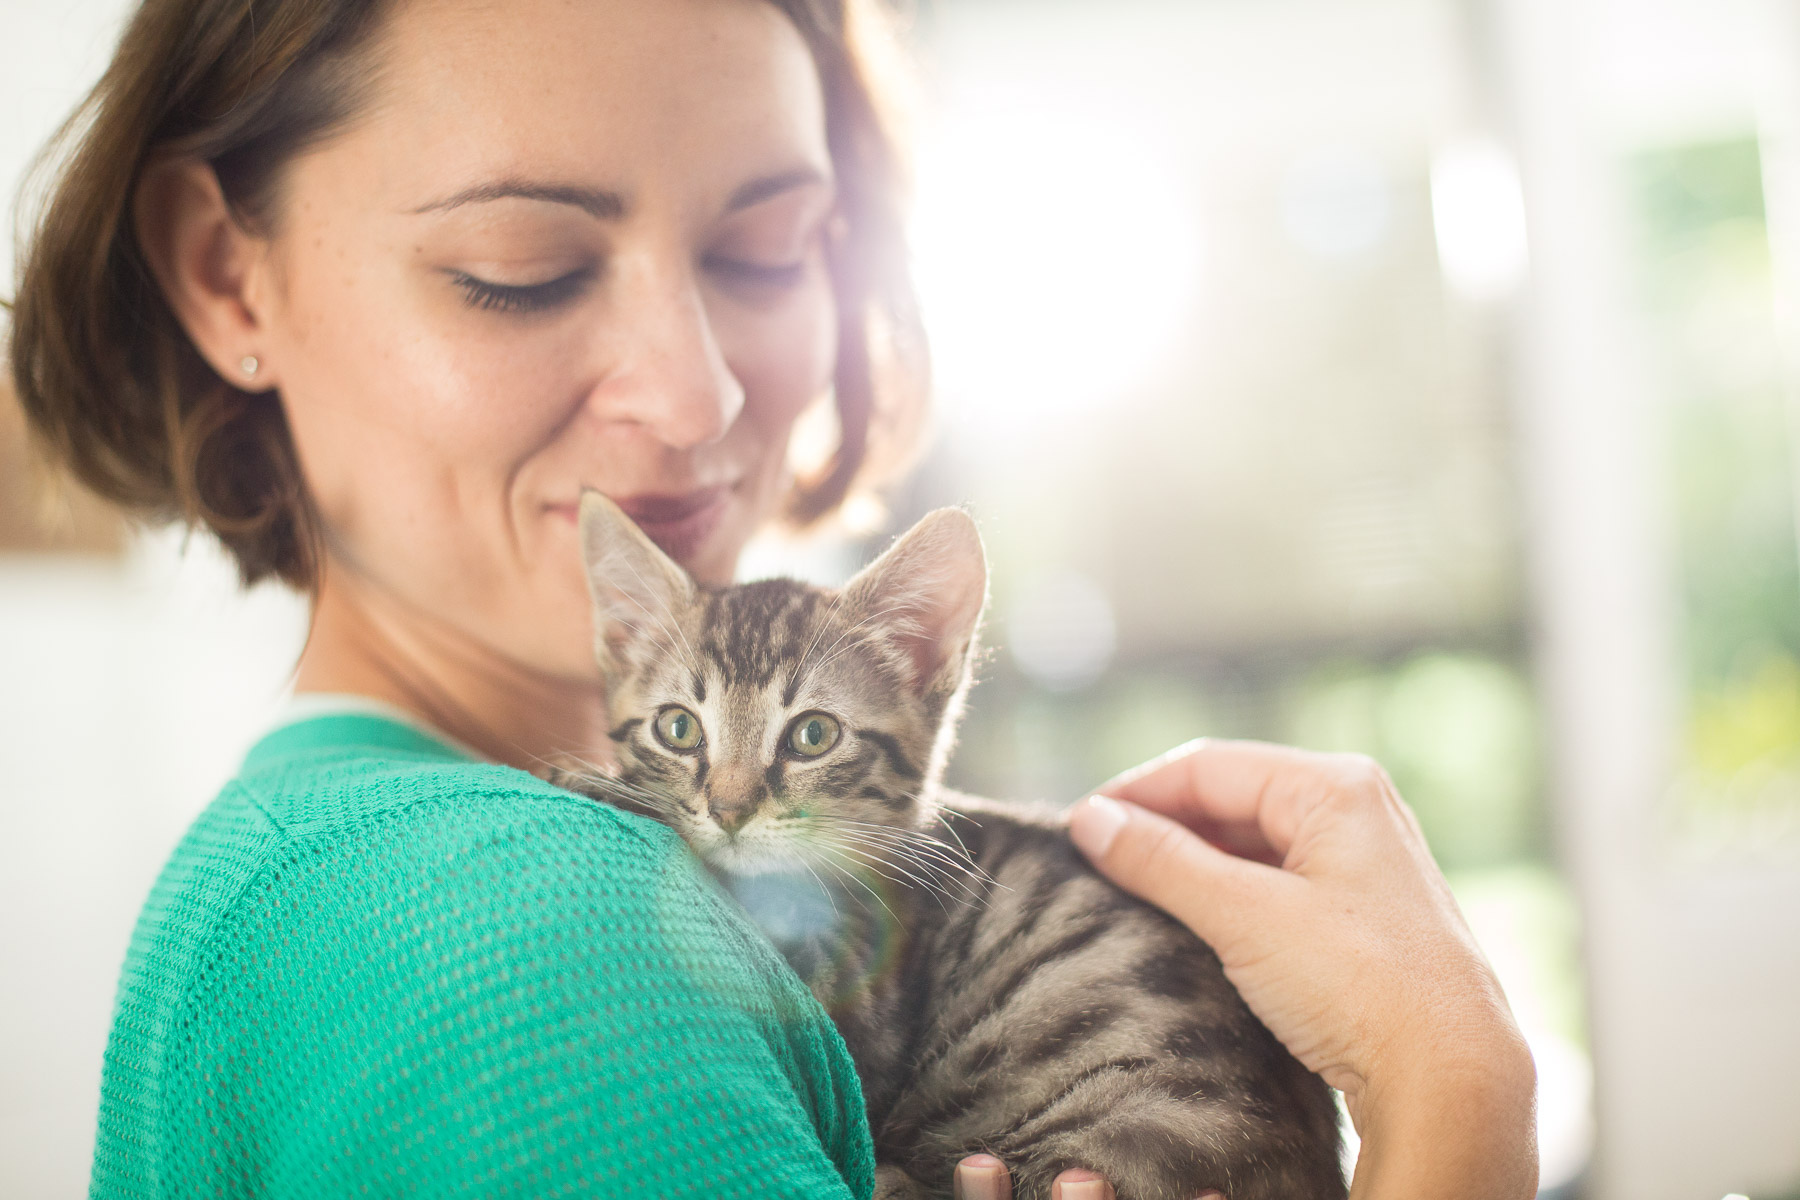 woman-with-little-cat-photography.jpg